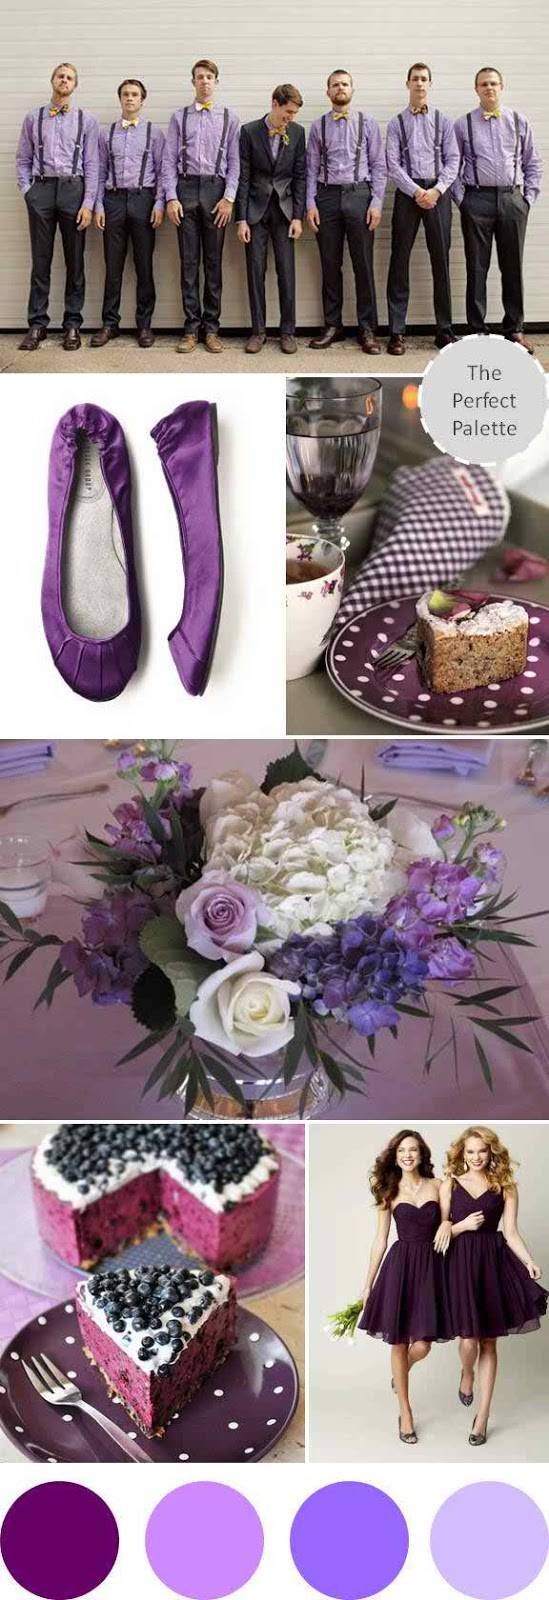 Wedding Colors I Love}: Shades of Plum!   The Perfect Palette